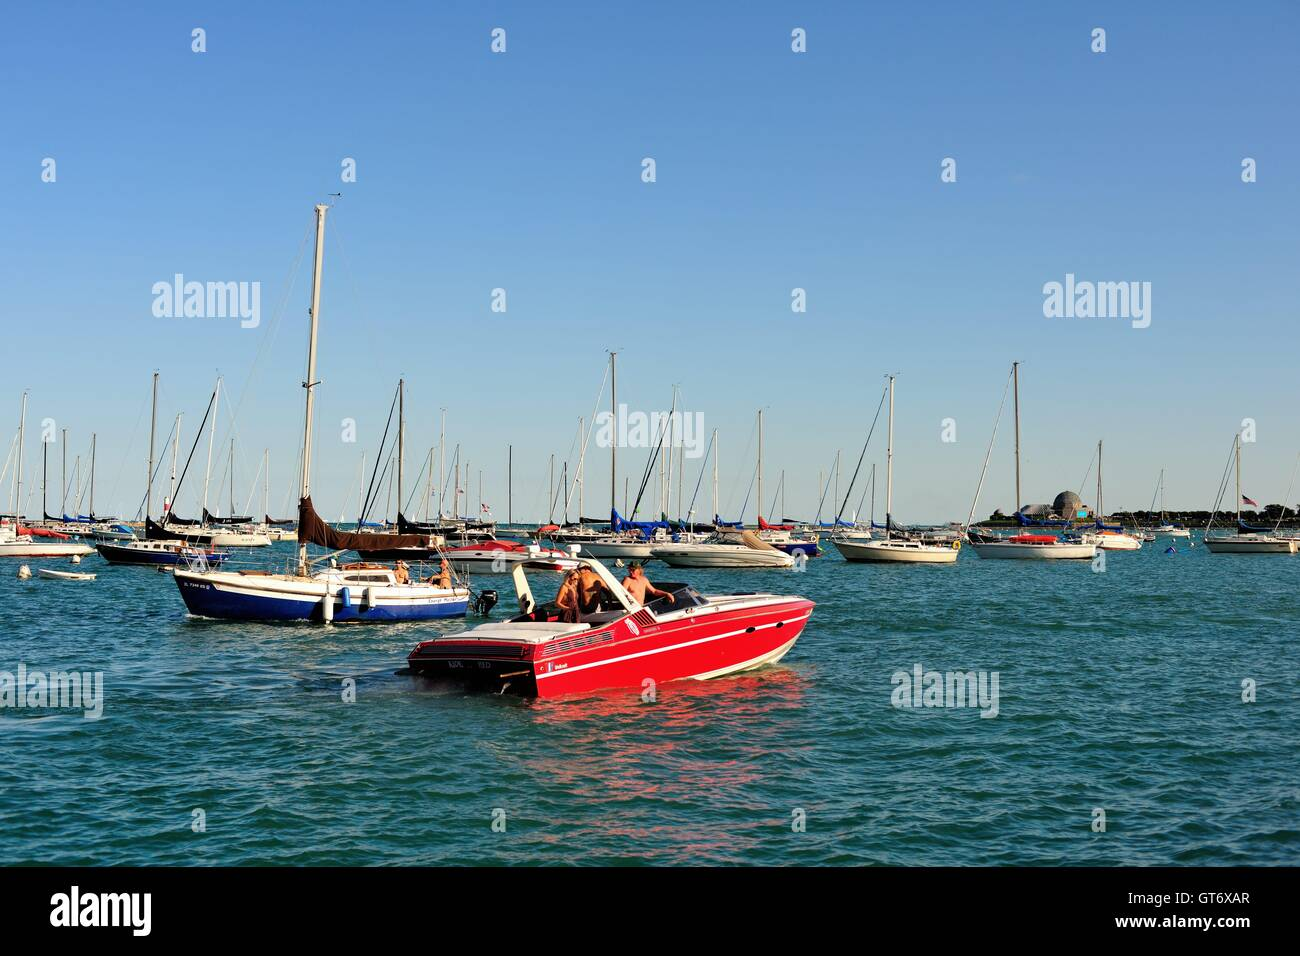 An outbound speed boat passes an incoming sailboat in Chicago's Monroe Street Harbor on Lake Michigan. Chicago, - Stock Image